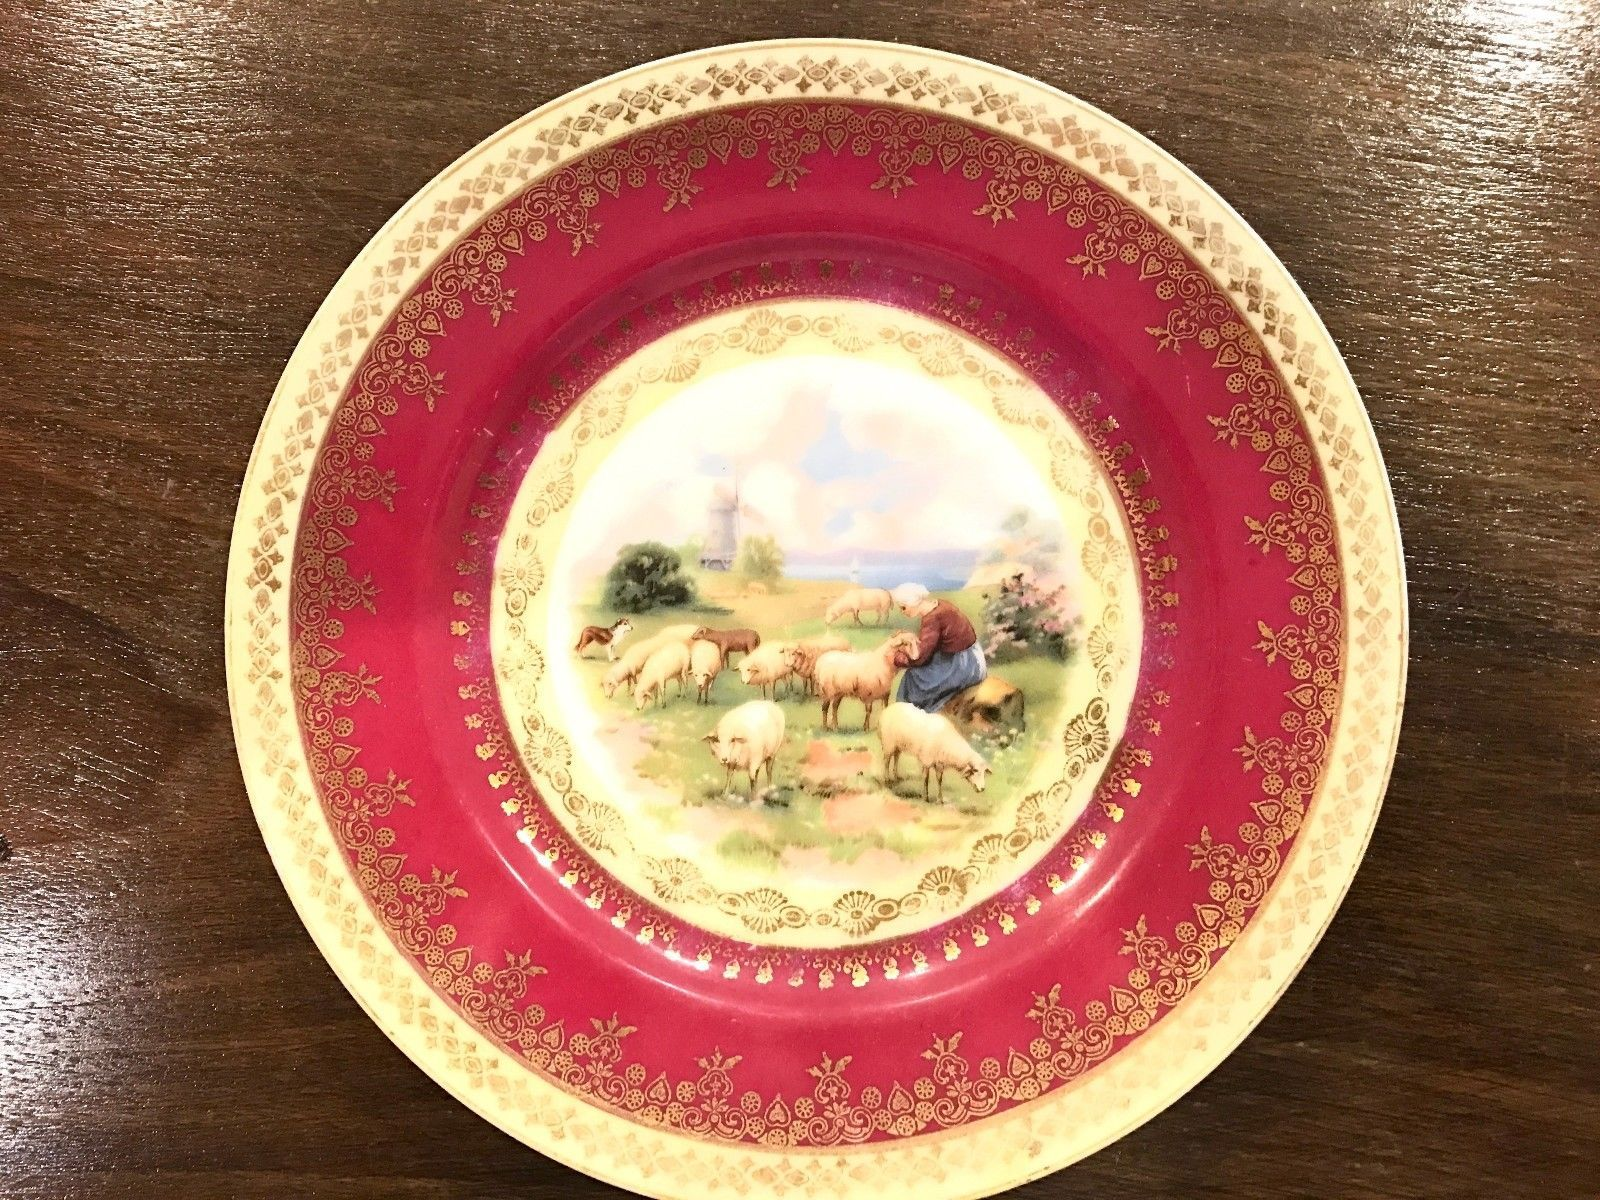 ANTIQUE GARDNER RUSSIAN IMPERIAL PORCELAIN TWO PLATES 7  | eBay & ANTIQUE GARDNER RUSSIAN IMPERIAL PORCELAIN TWO PLATES 7